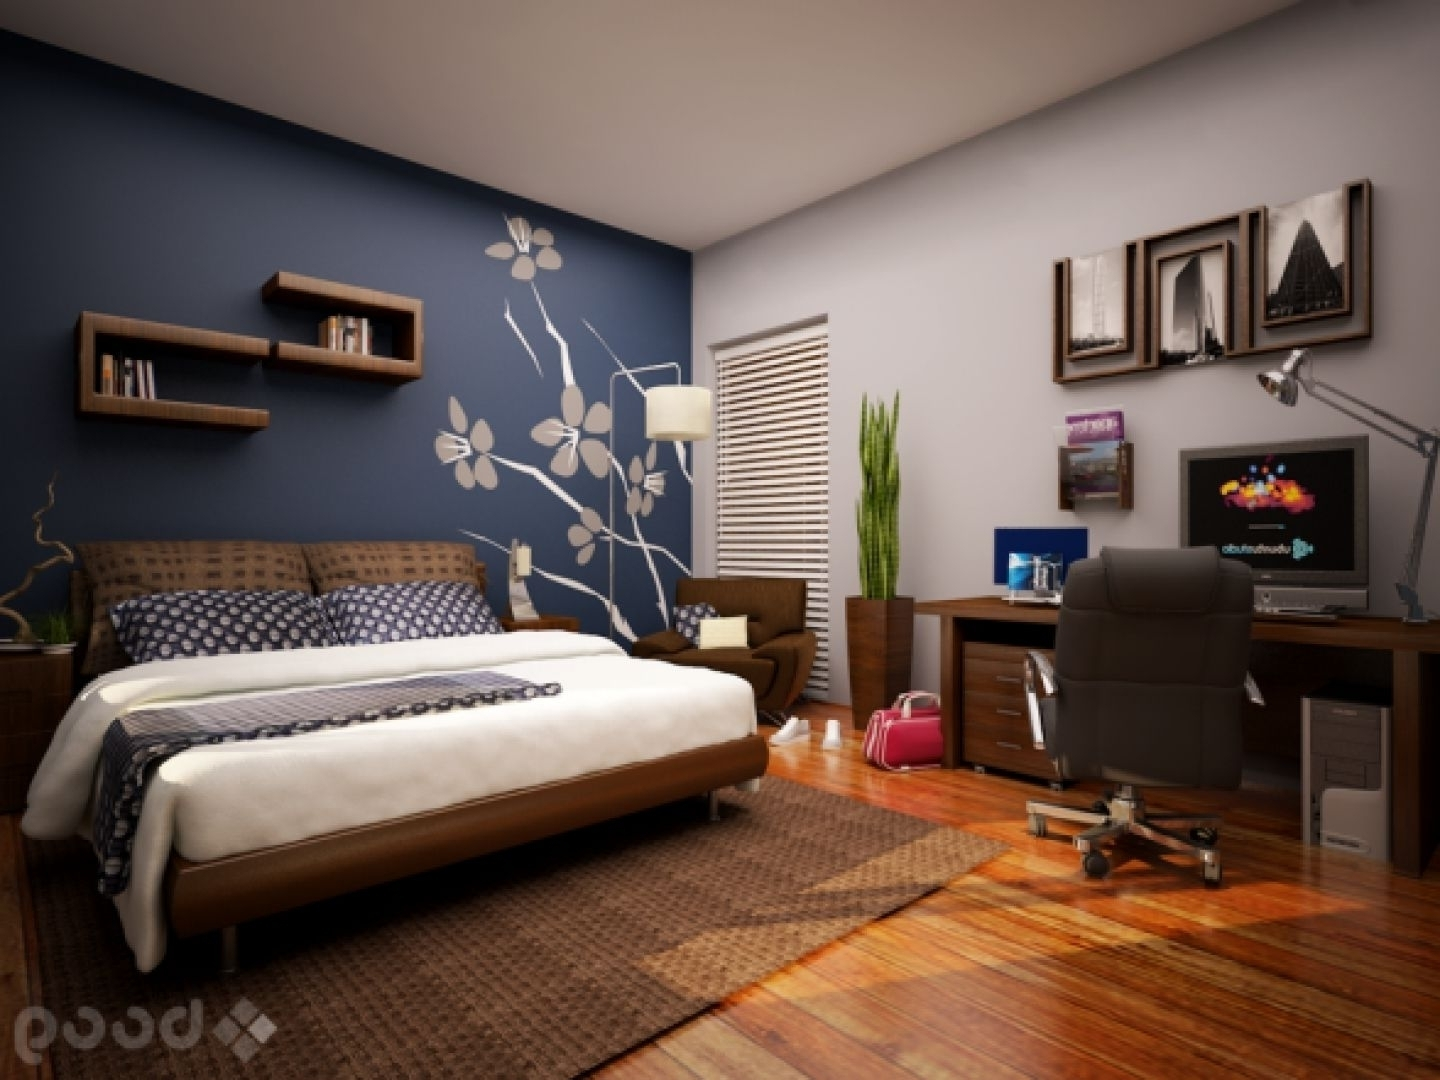 Bedroom Design: Accent Wall Ideas For Small Bedroom Awesome In Latest Wall Accents For Small Bedroom (View 2 of 15)